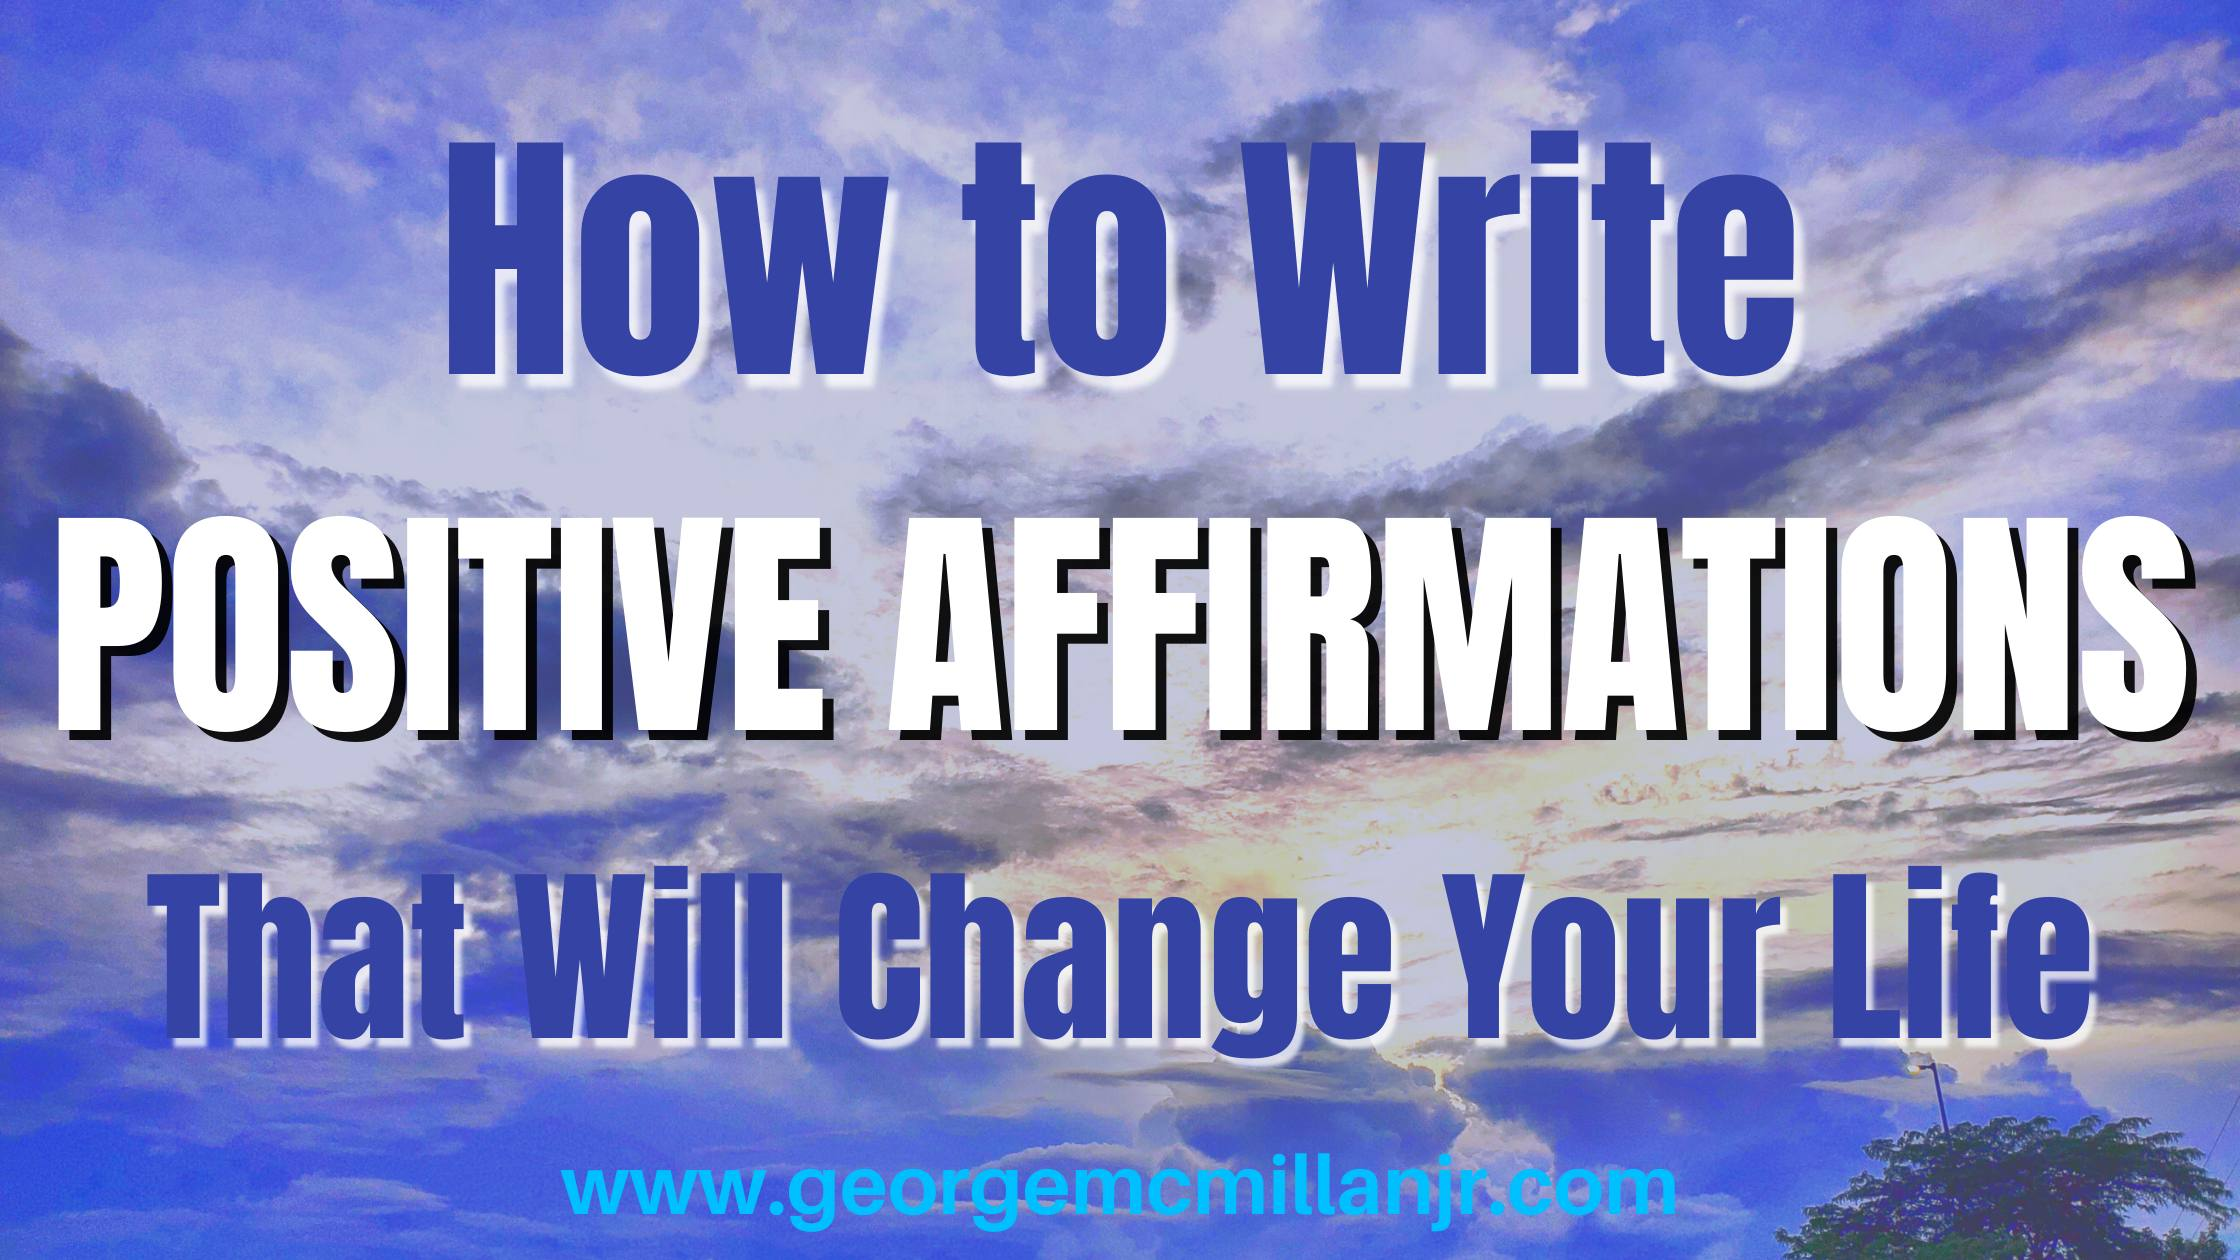 A blog post featured image of a vibrant blue sunset, with dark blue and white text that says, How to Write Positive Affirmations That Will Change Your Life by www.georgemcmillanjr.com.